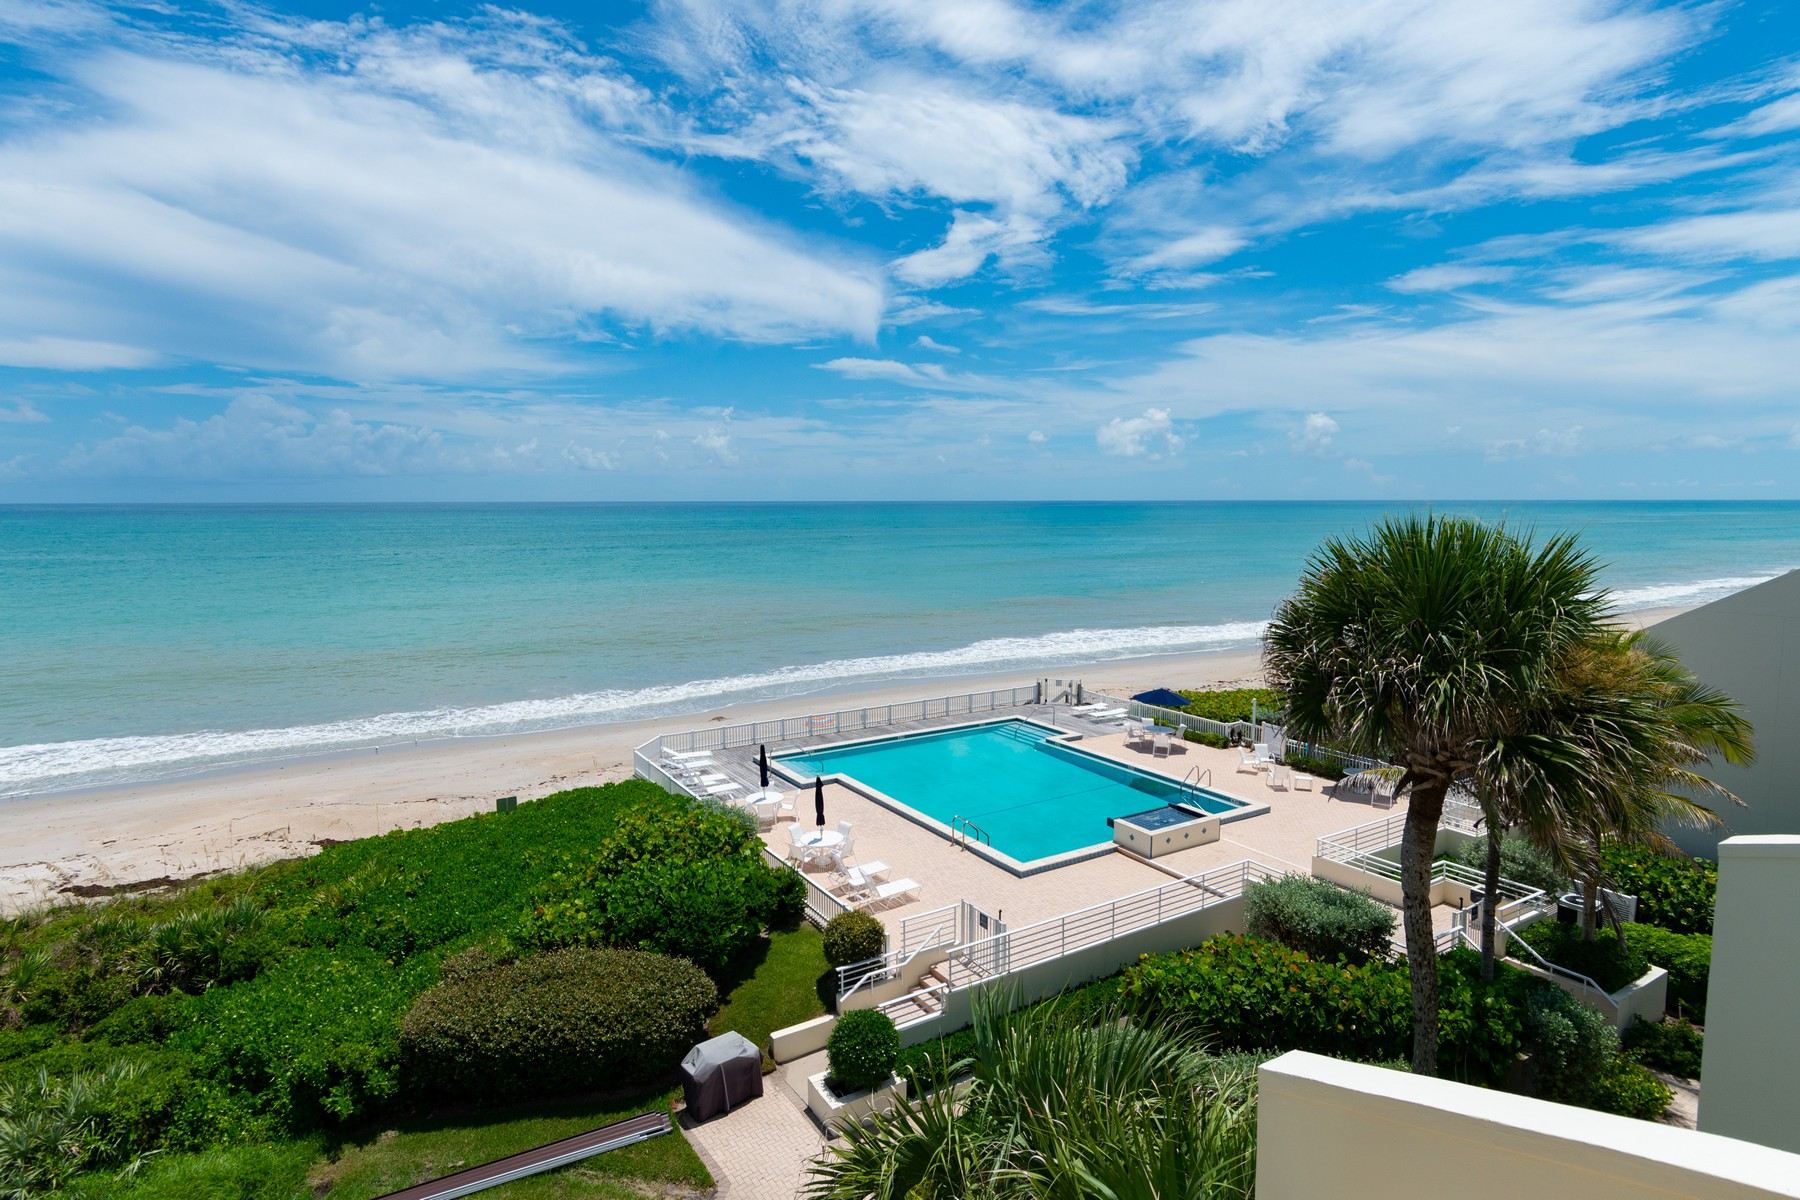 Baytree Oceanfront Penthouse 8416 Oceanside Drive #F31 Indian River Shores, Florida 32963 Förenta staterna